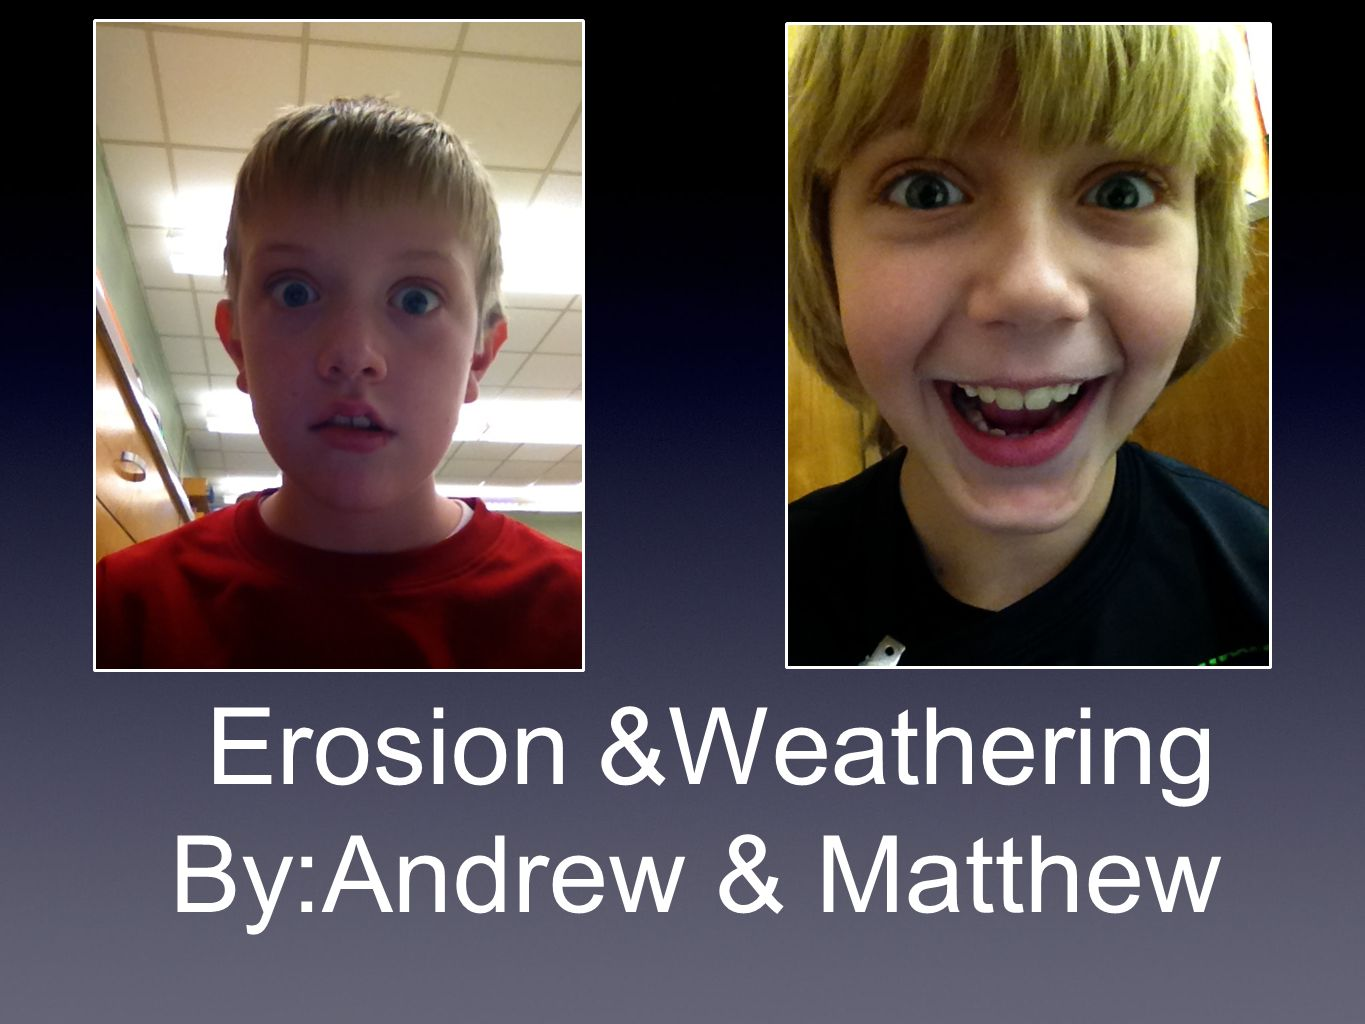 Erosion &Weathering By:Andrew & Matthew